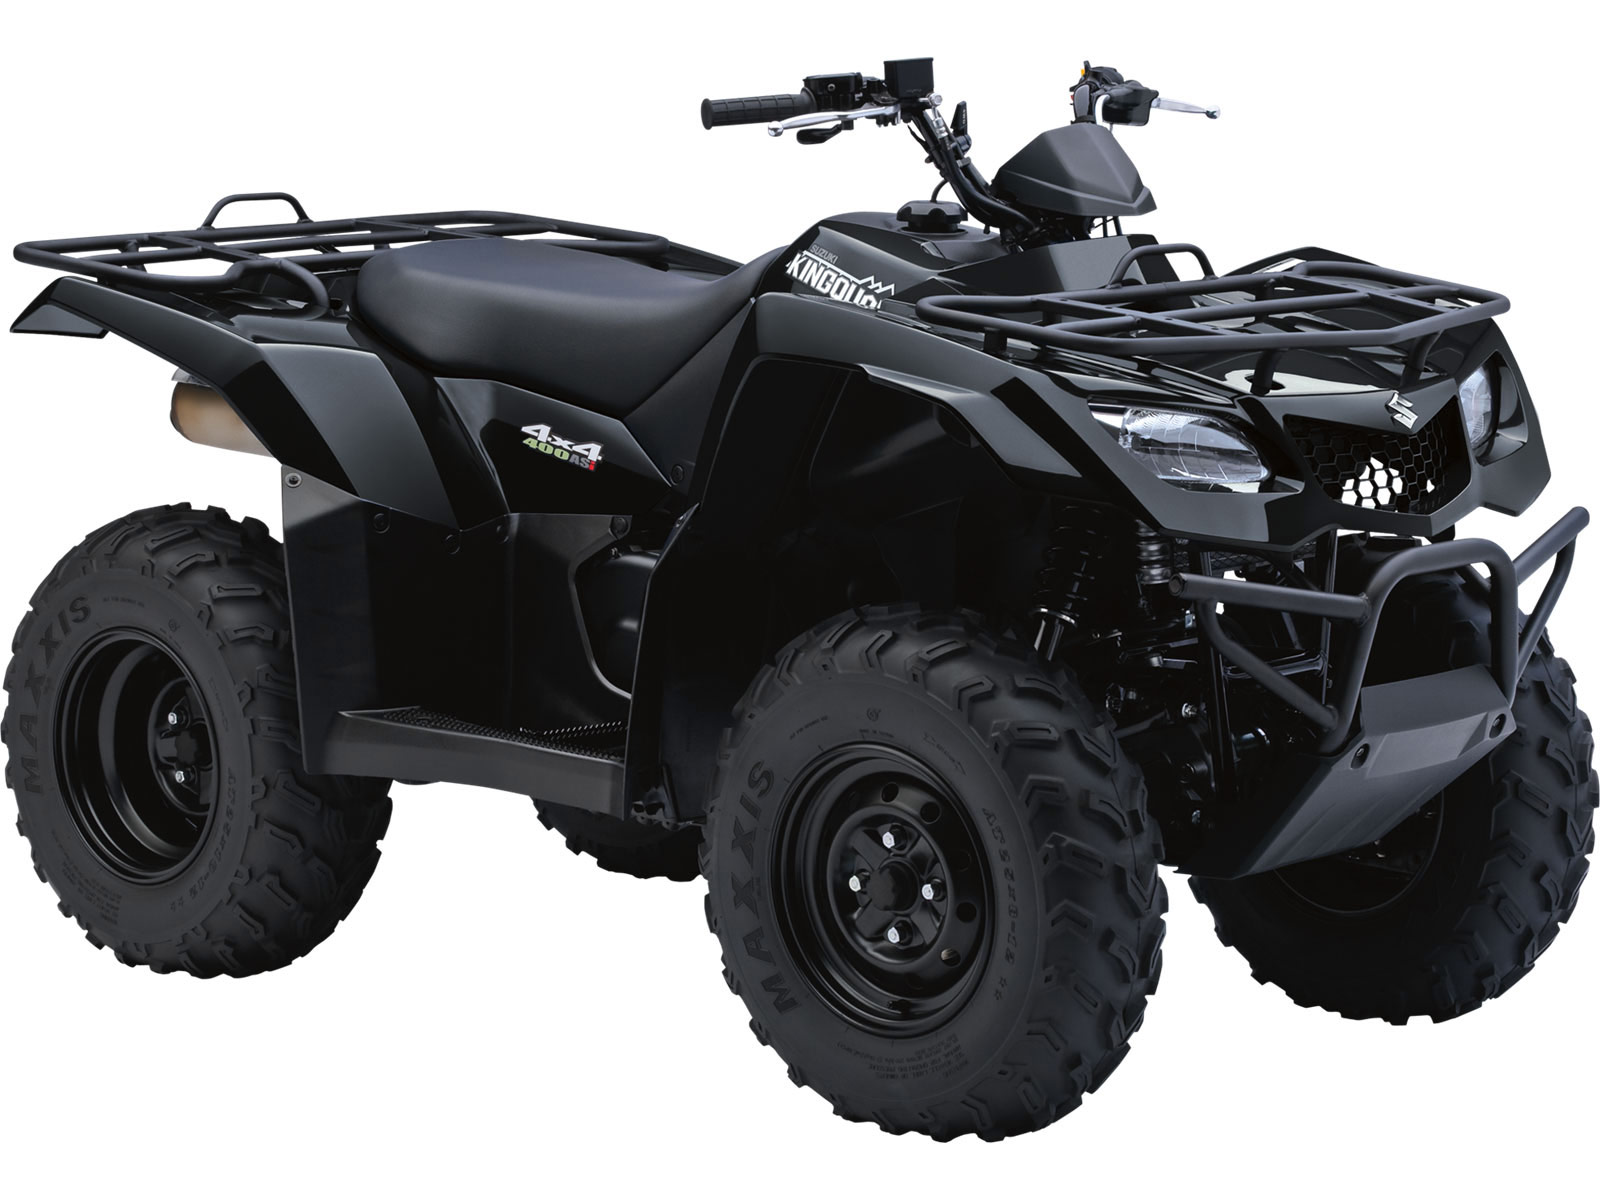 suzuki kingquad 400asi 2011 atv pictures accident lawyers. Black Bedroom Furniture Sets. Home Design Ideas